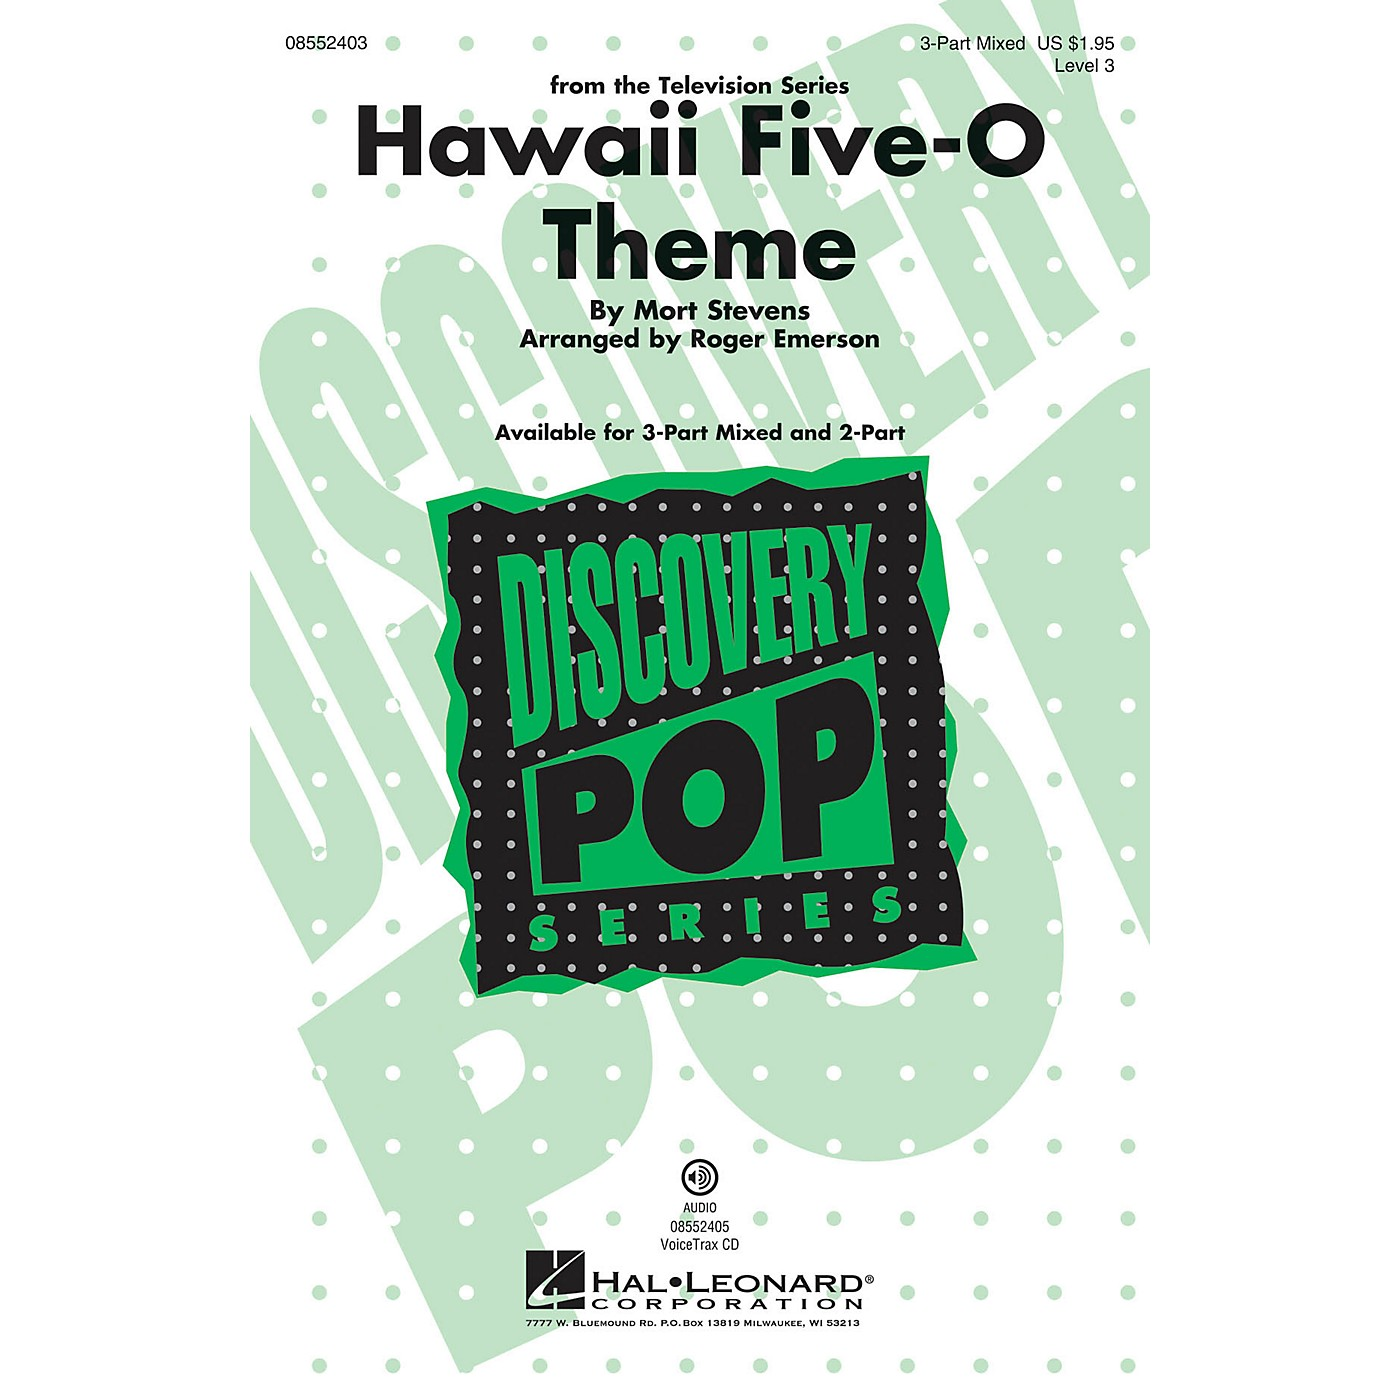 Hal Leonard Hawaii Five-O Theme (Discovery Level 3) 3-Part Mixed arranged by Roger Emerson thumbnail